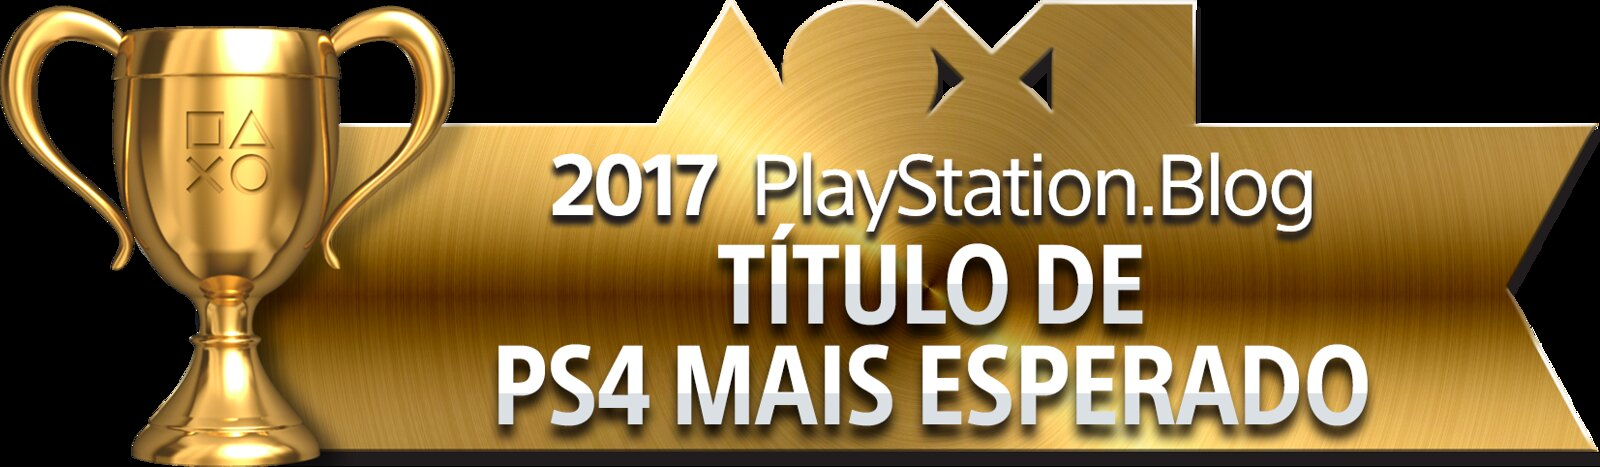 PlayStation Blog Game of the Year 2017 - Most Anticipated PS4 Title (Gold)